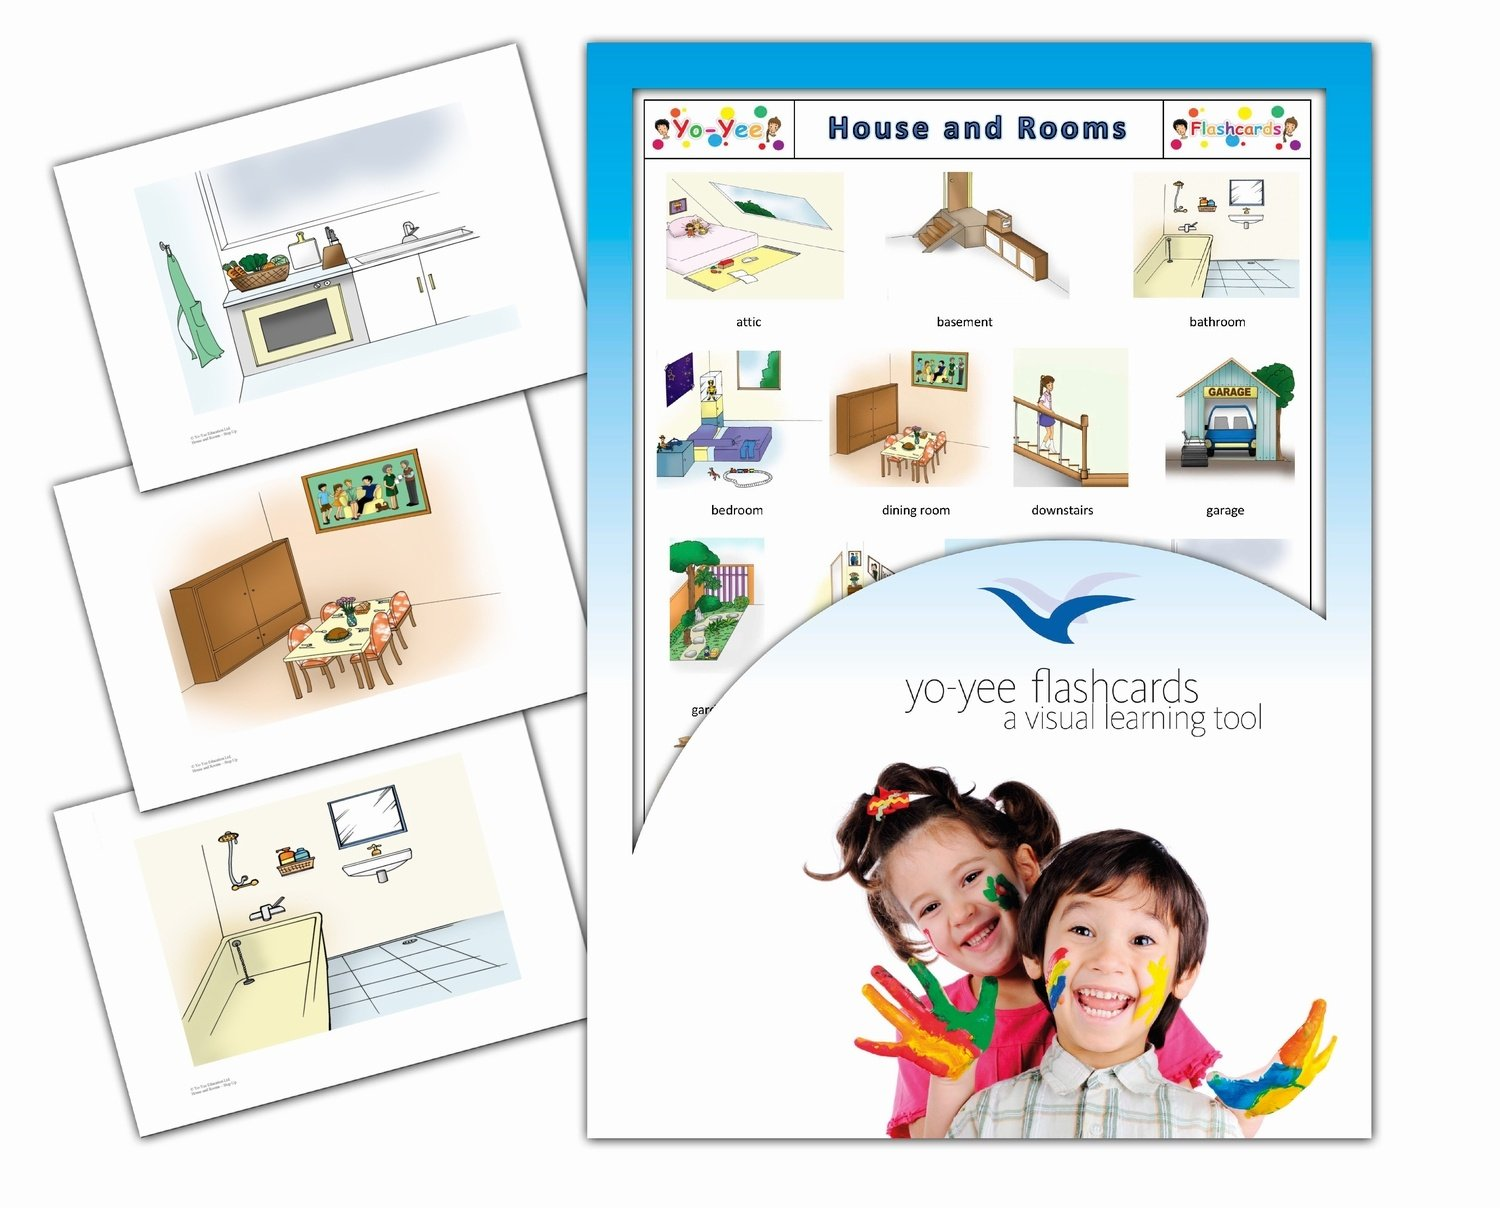 Yo-Yee Flashcards - Rooms and House Flash Cards - English Vocabulary Picture Cards for Toddlers, Kids, Children and Adults